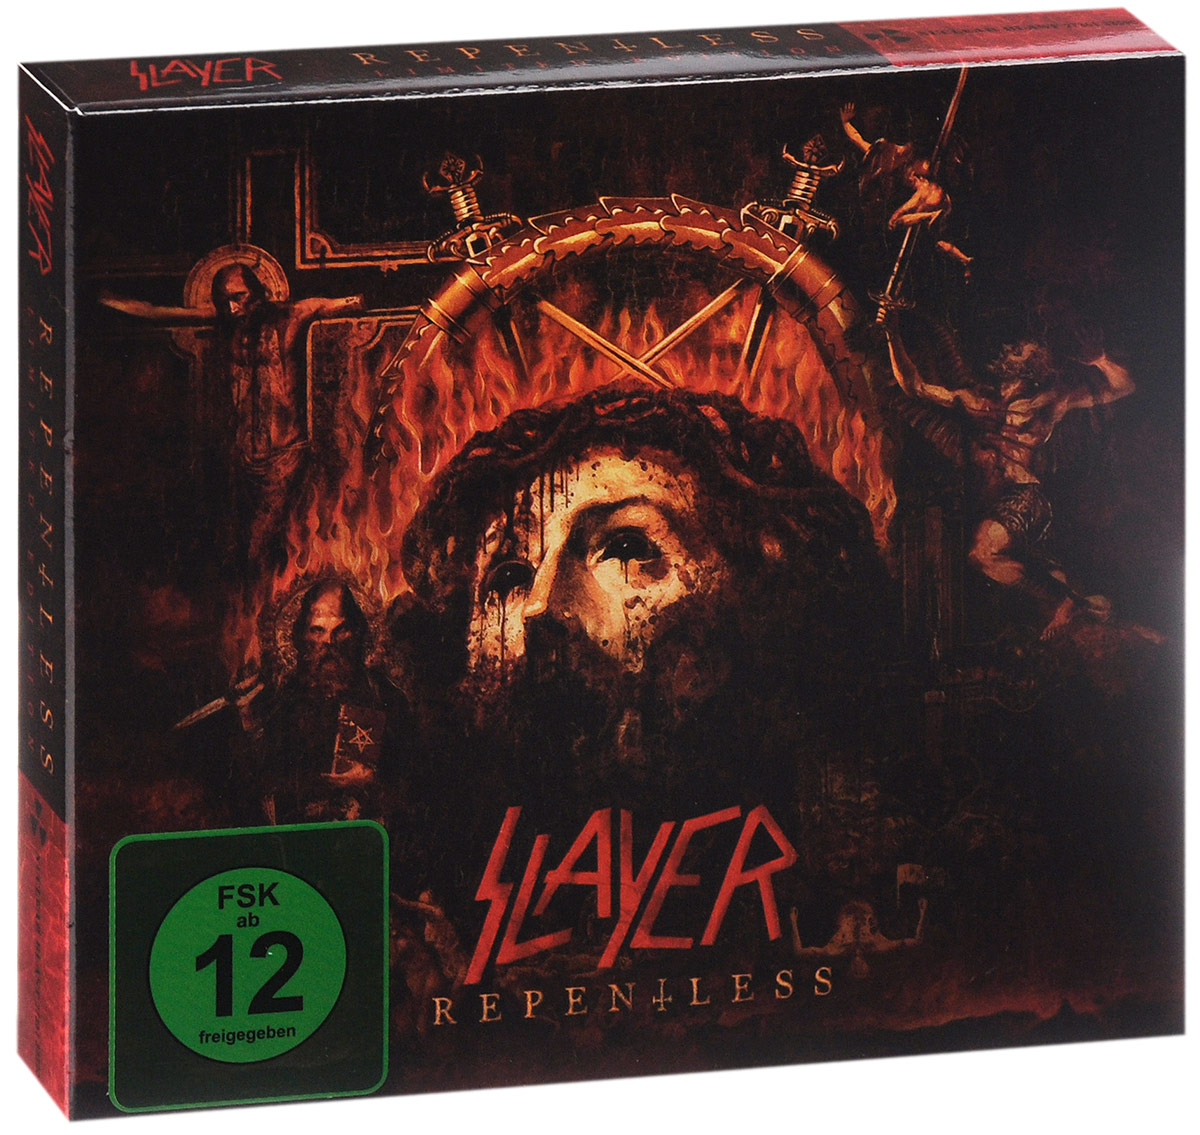 Slayer Slayer. Repentless. Limited Edition (CD + DVD) evanescence – synthesis deluxe edition cd dvd